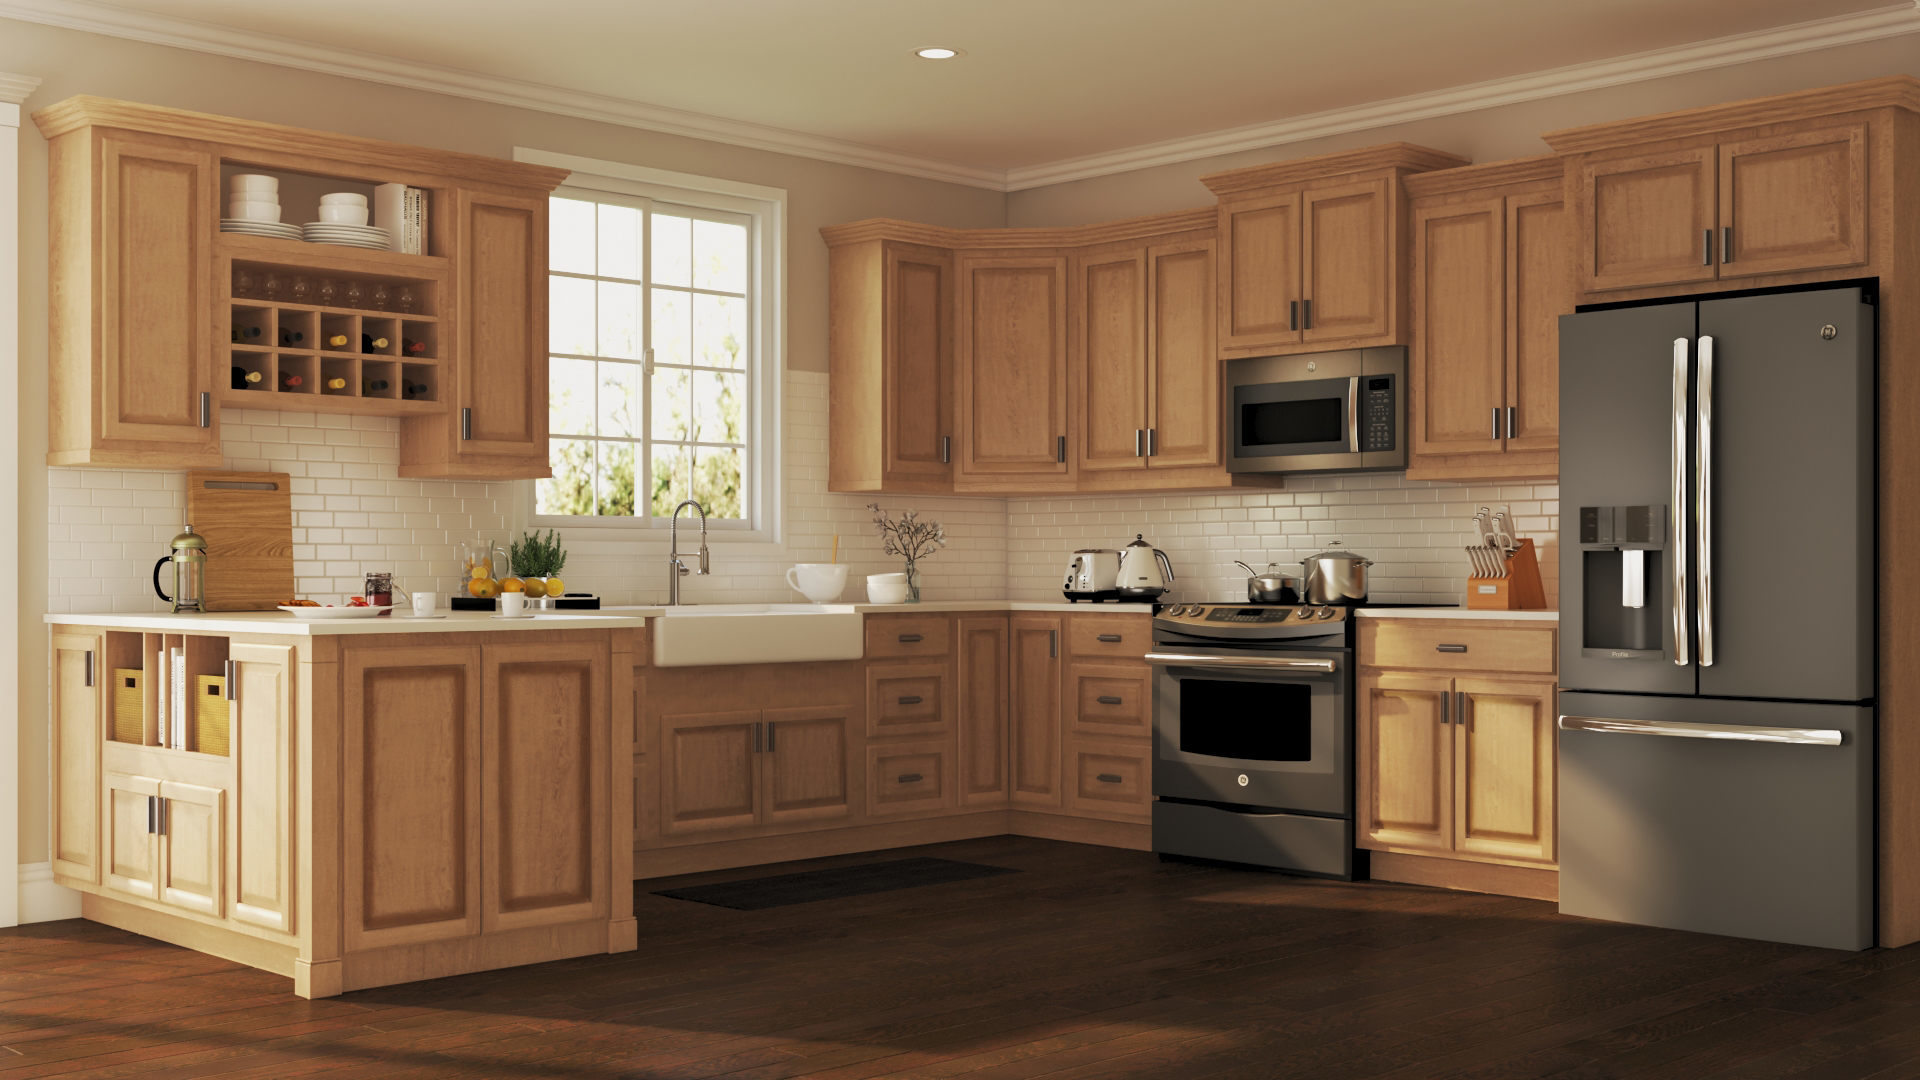 The Process Of Repainting Old Kitchen Cabinets In Historic